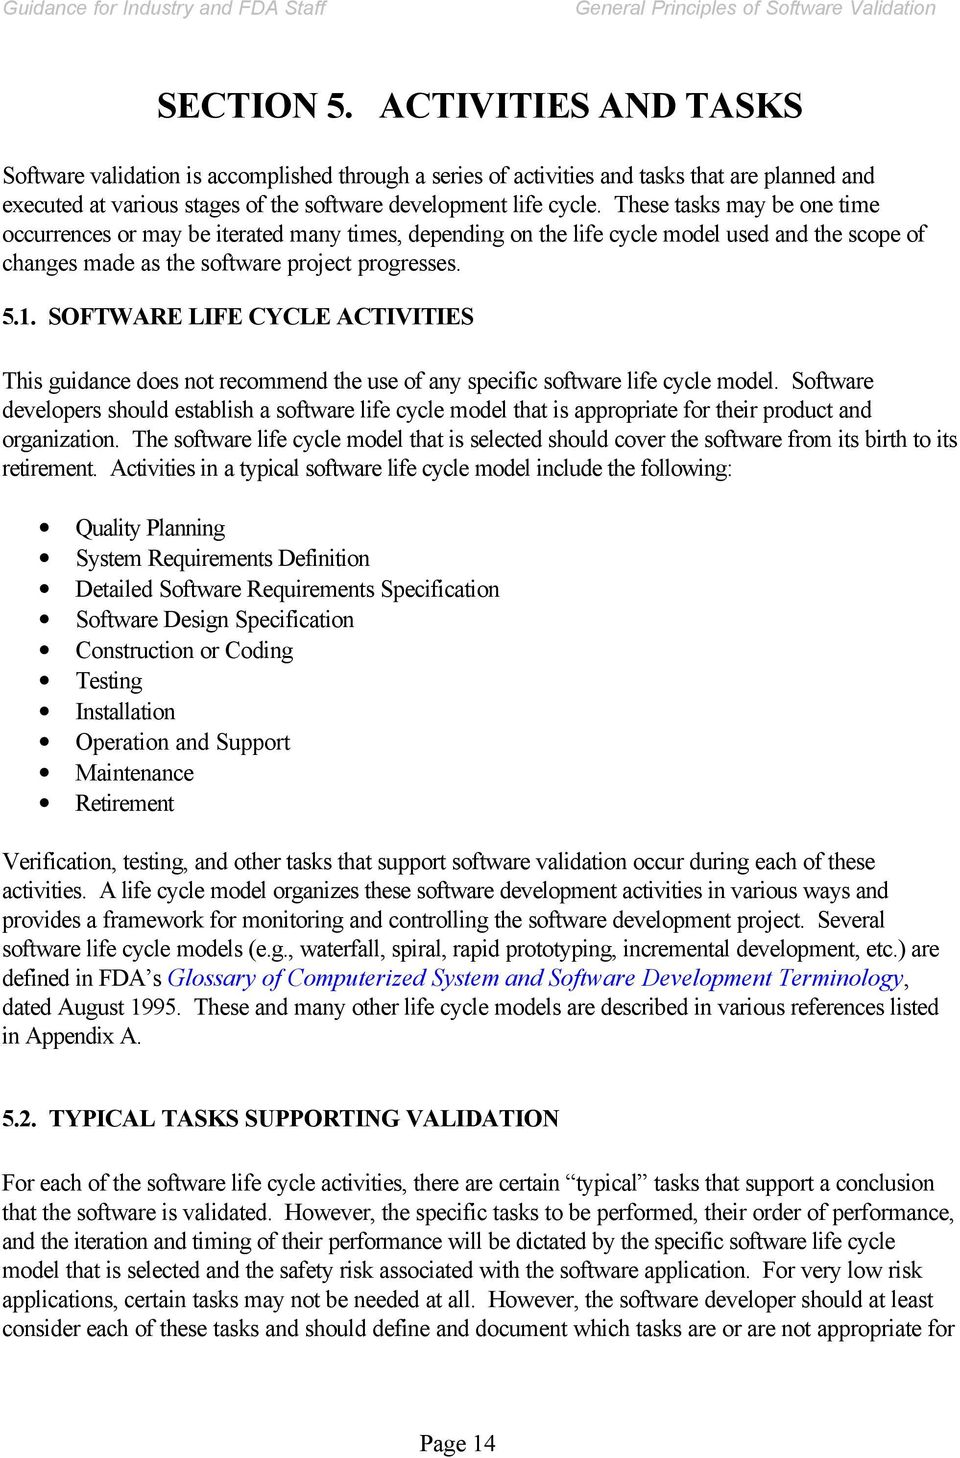 SOFTWARE LIFE CYCLE ACTIVITIES This guidance does not recommend the use of any specific software life cycle model.